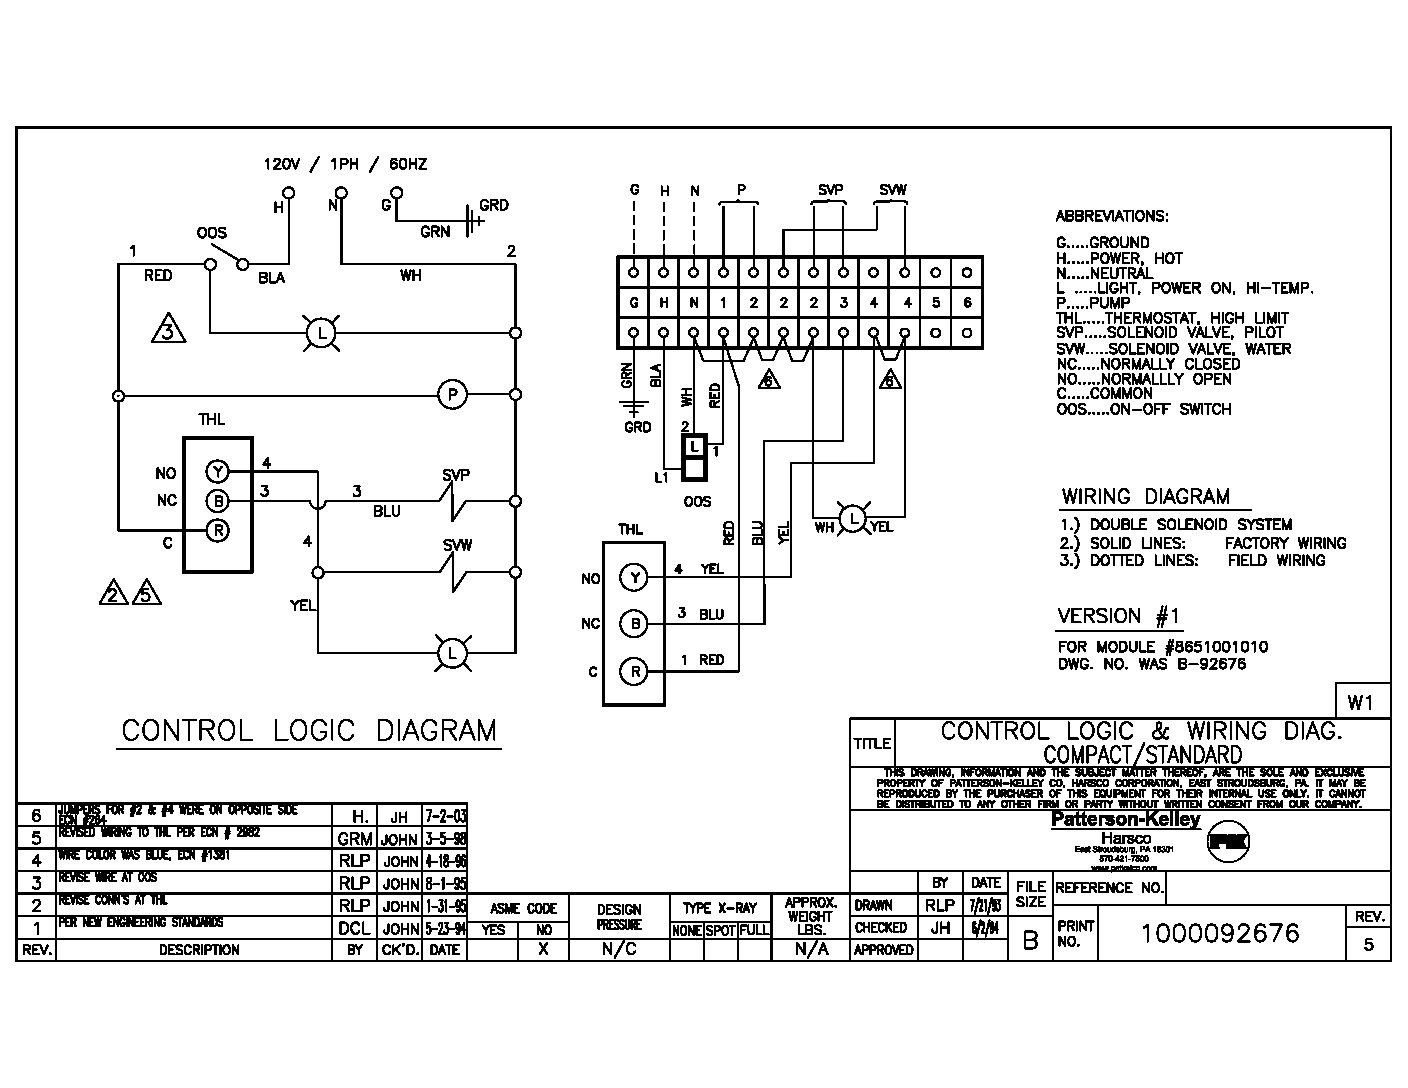 hight resolution of industrial 120v wiring diagrams wiring diagram compilation industrial 120v wiring diagrams